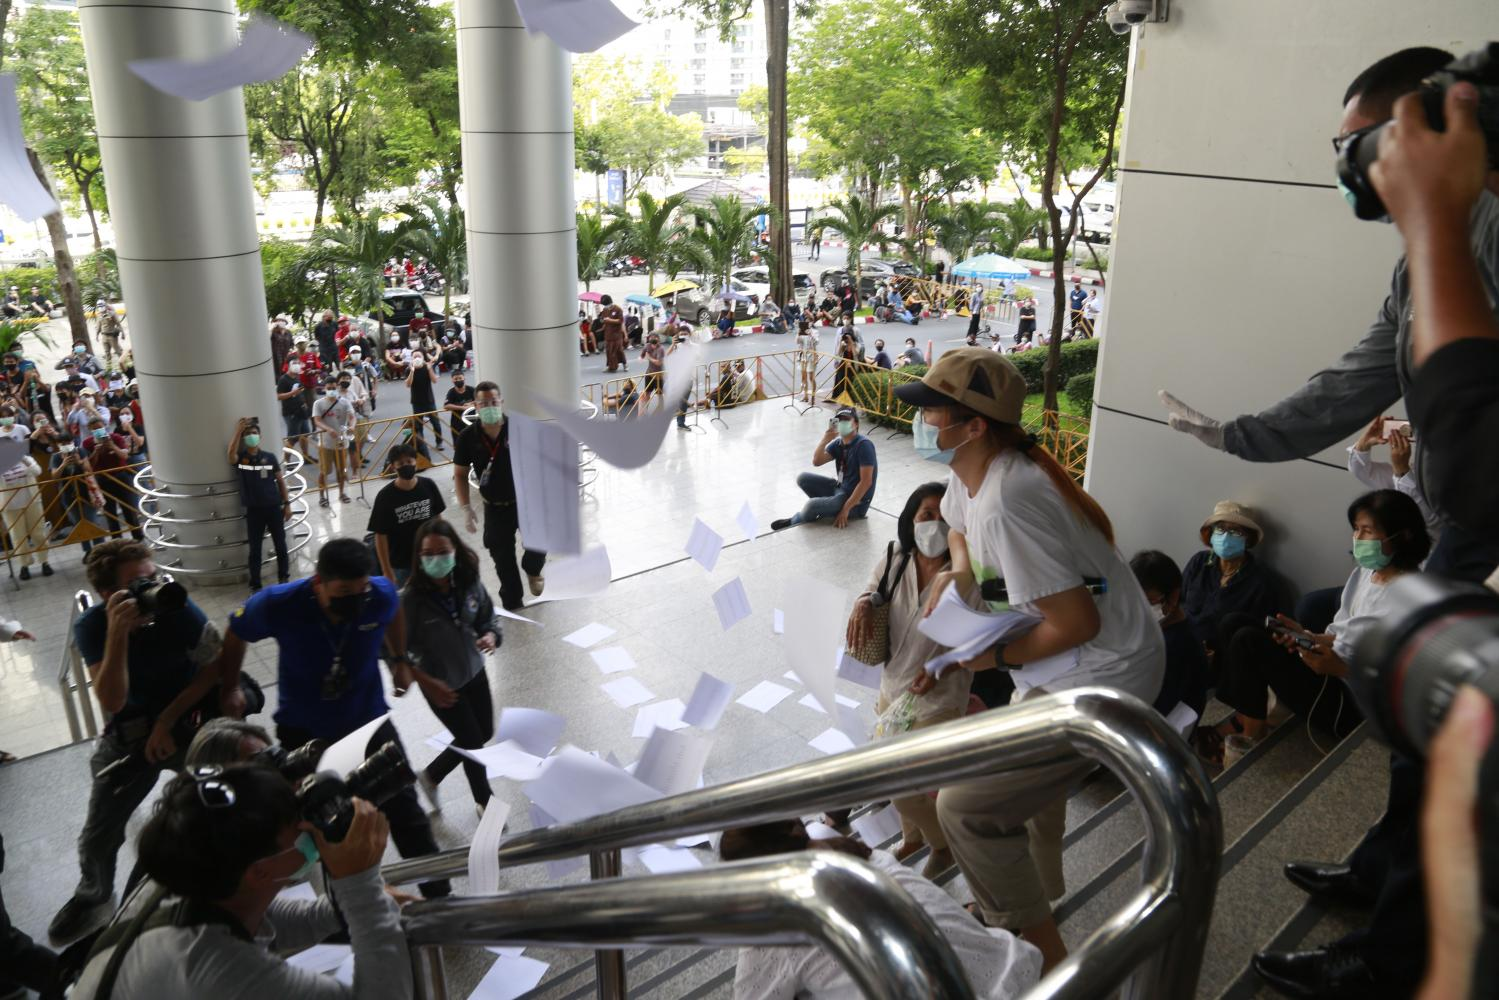 Student activist Benja Apan from the student activist group United Front of Thammasat and Demonstration on Thursday scatters copies of letters demanding the release of seven co-leaders of the Ratsadon group at the Criminal Court on Ratchadaphisek Road after no one from the court came out to receive one. (Photo by Arnun Chonmahatrakool)